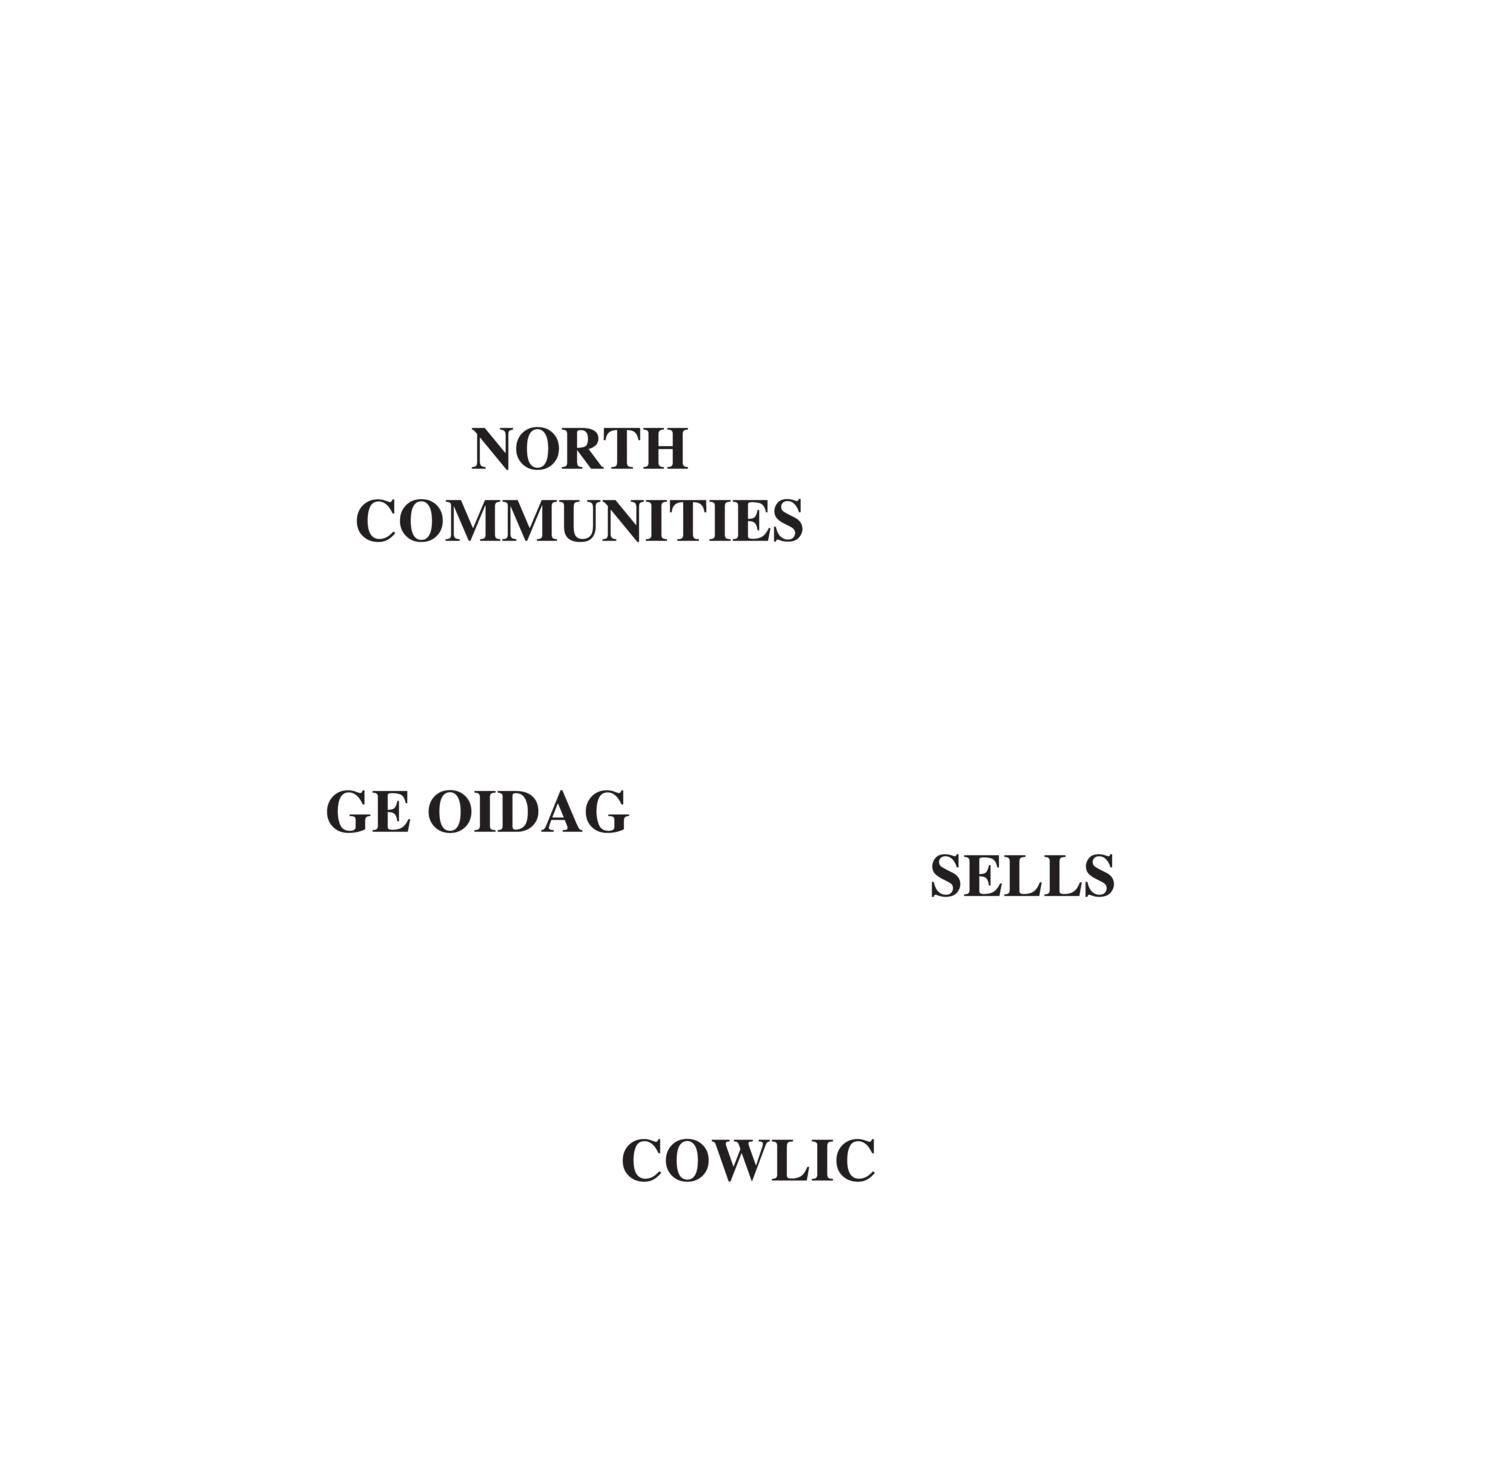 History Sells District